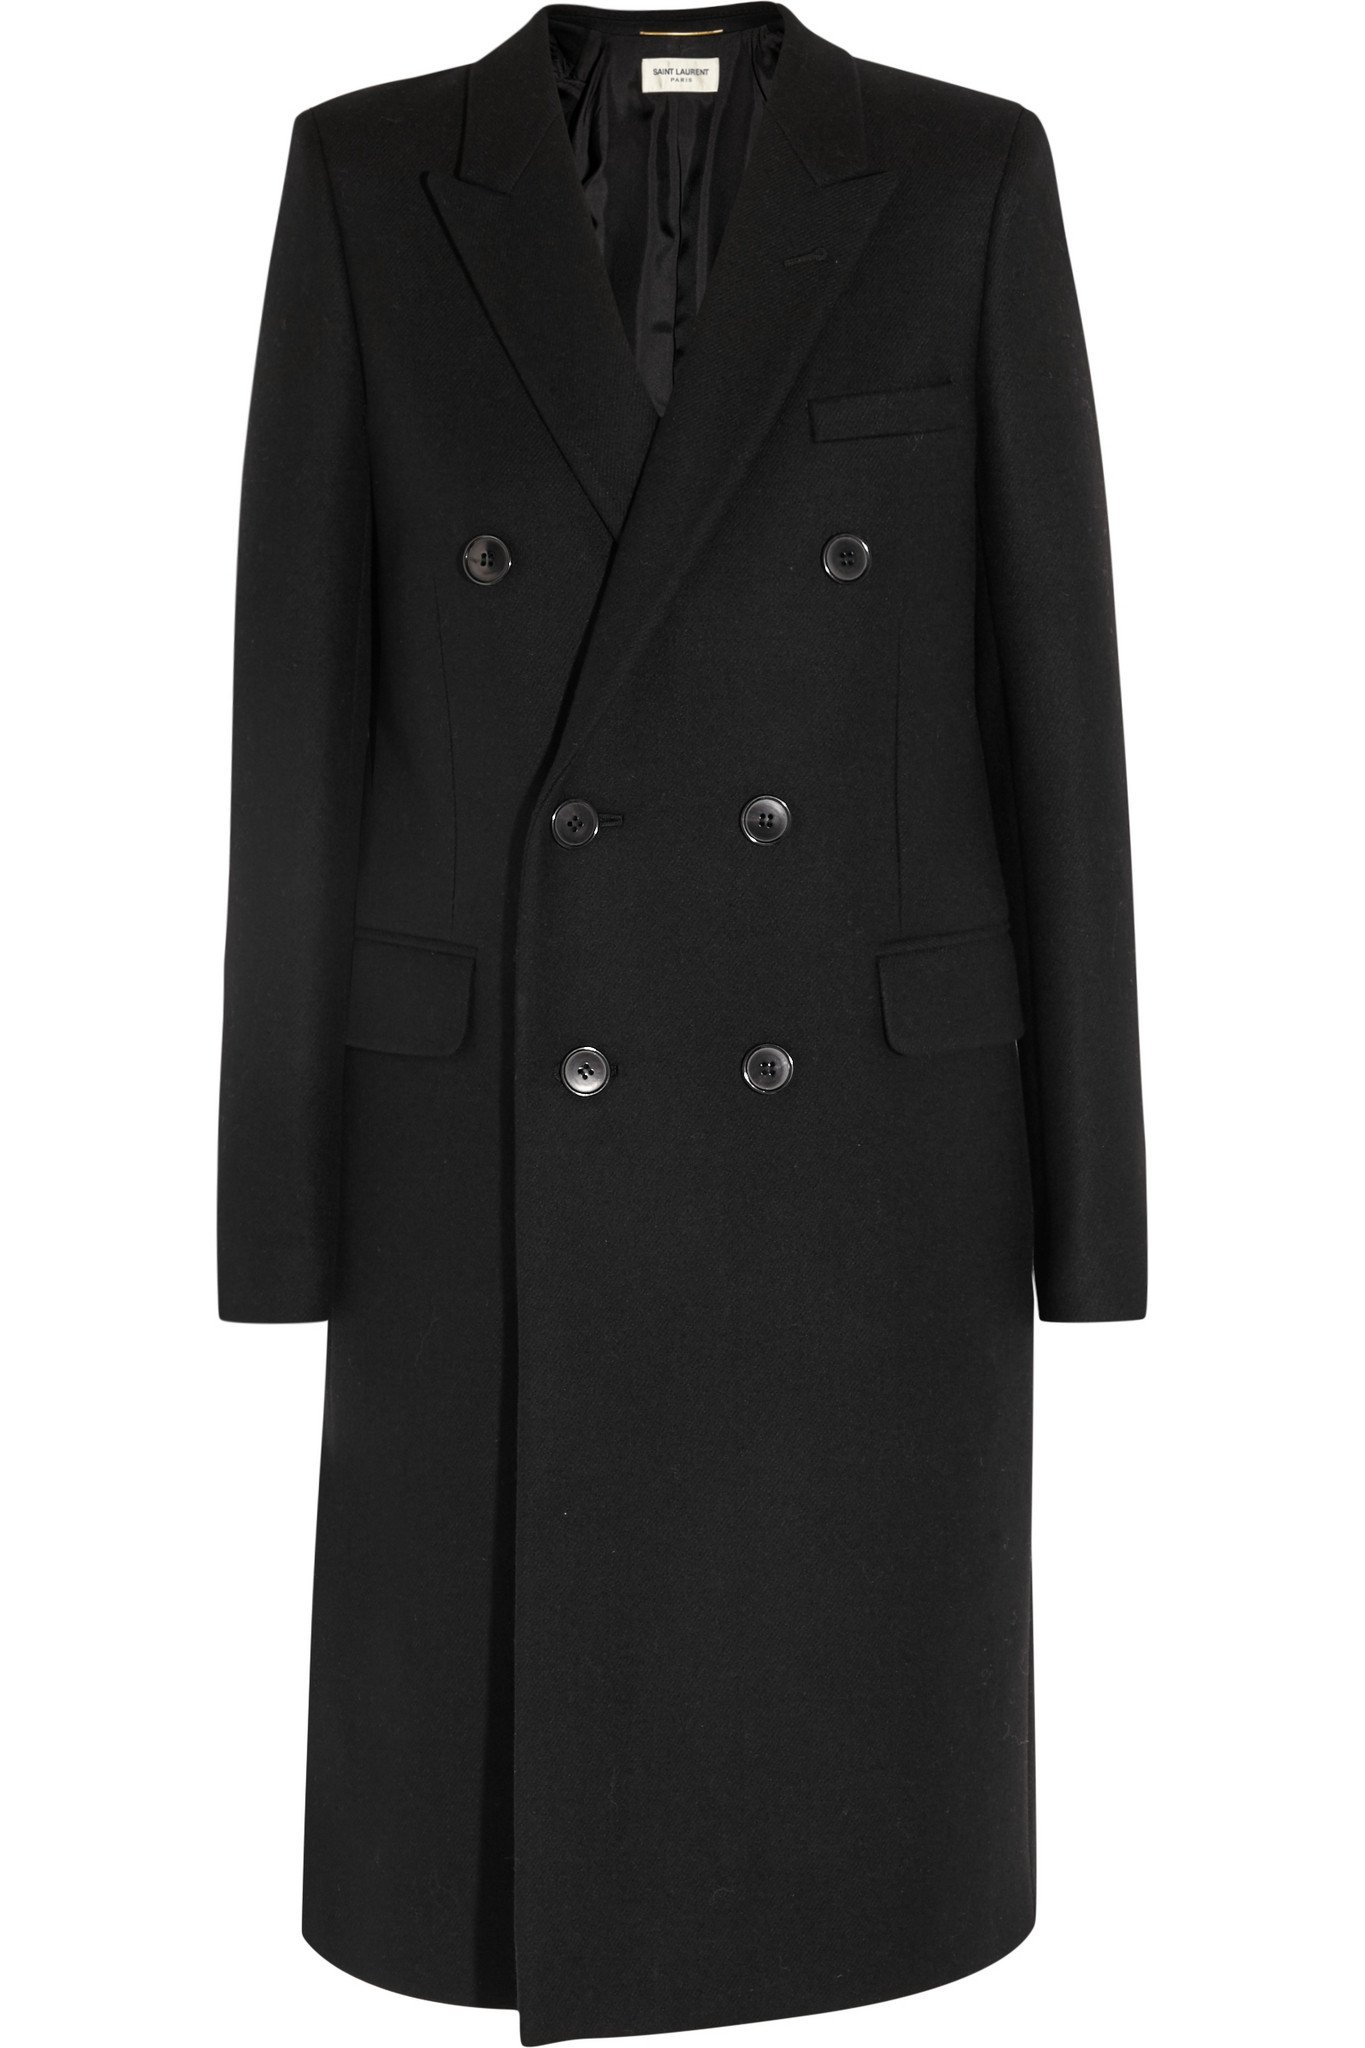 Saint laurent Double-breasted Wool-twill Coat in Black | Lyst